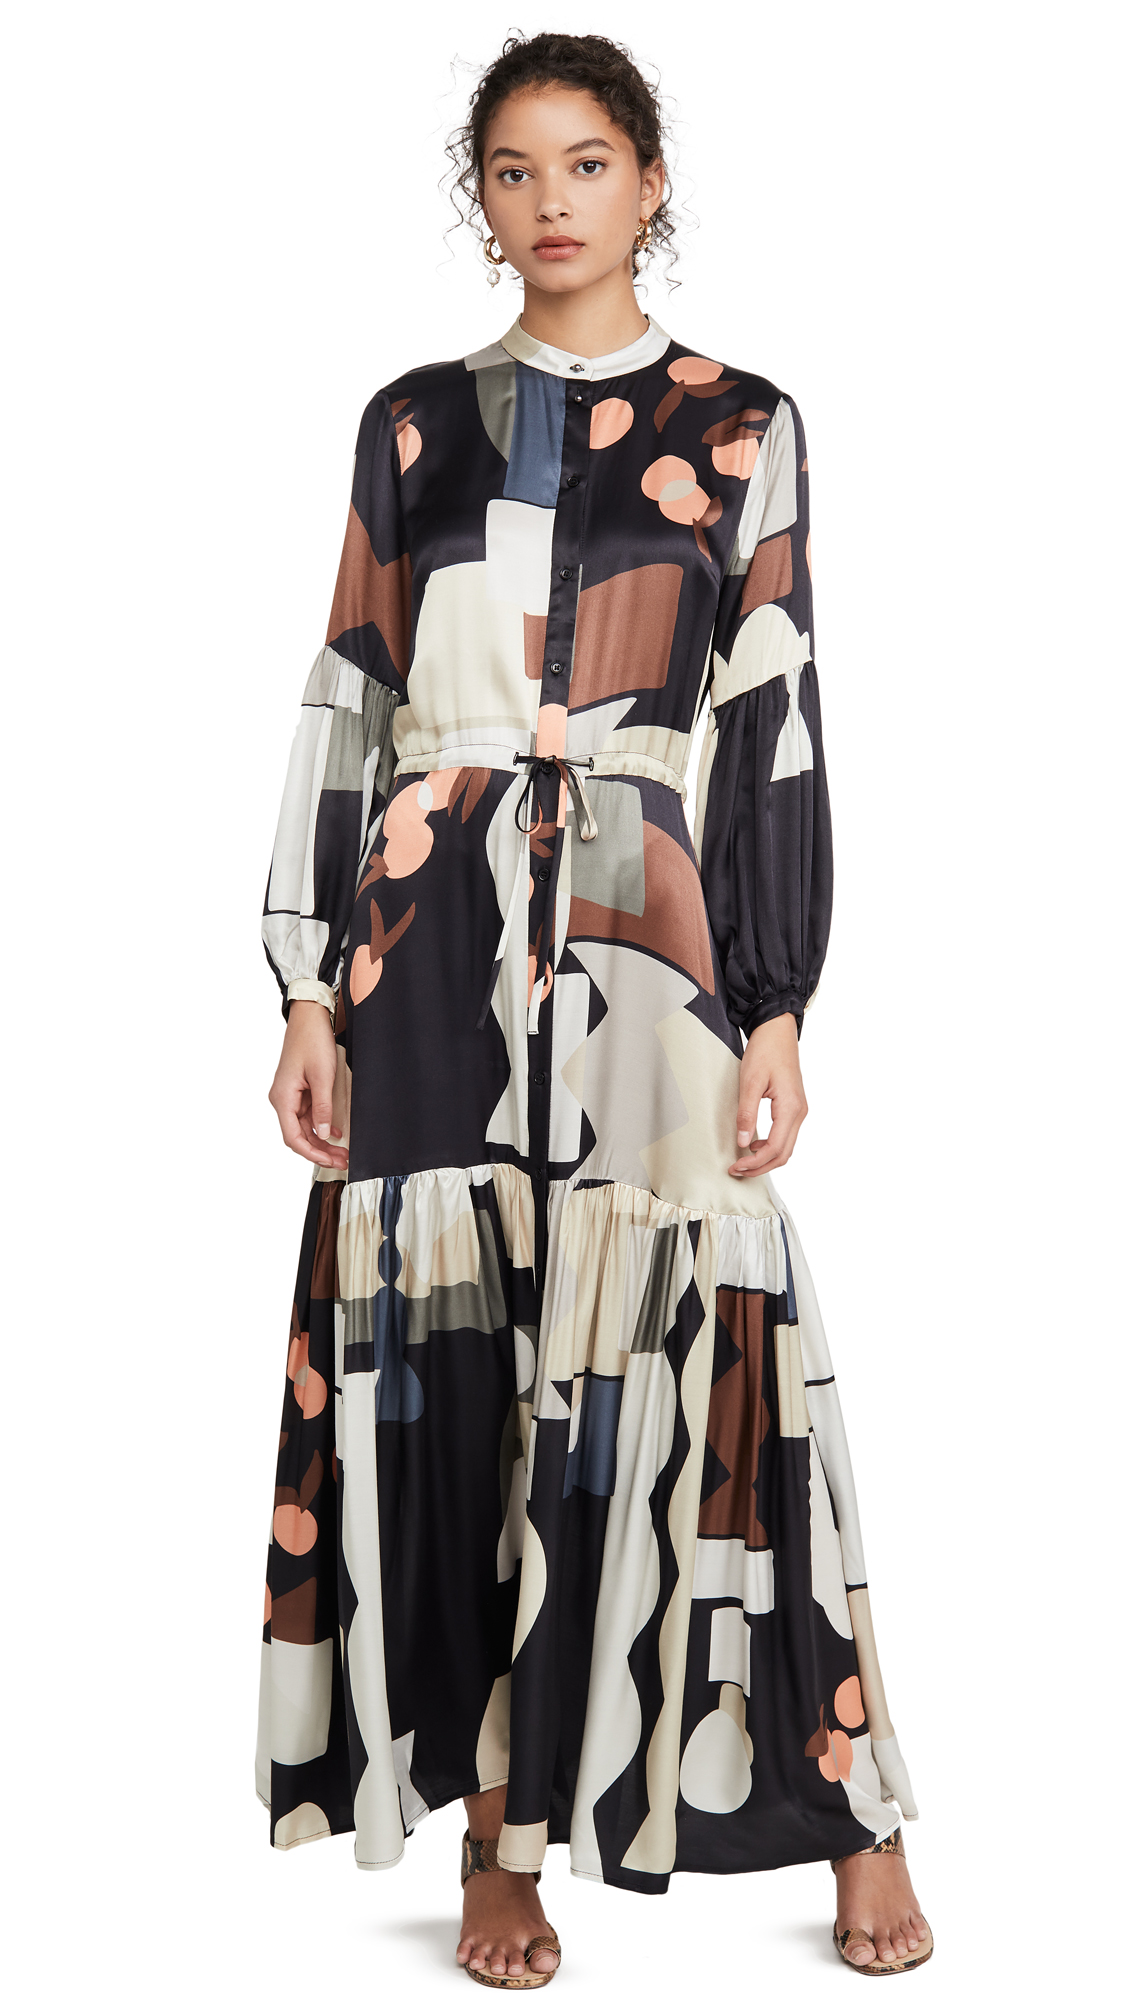 MUNTHE Emmanuel Dress - 30% Off Sale